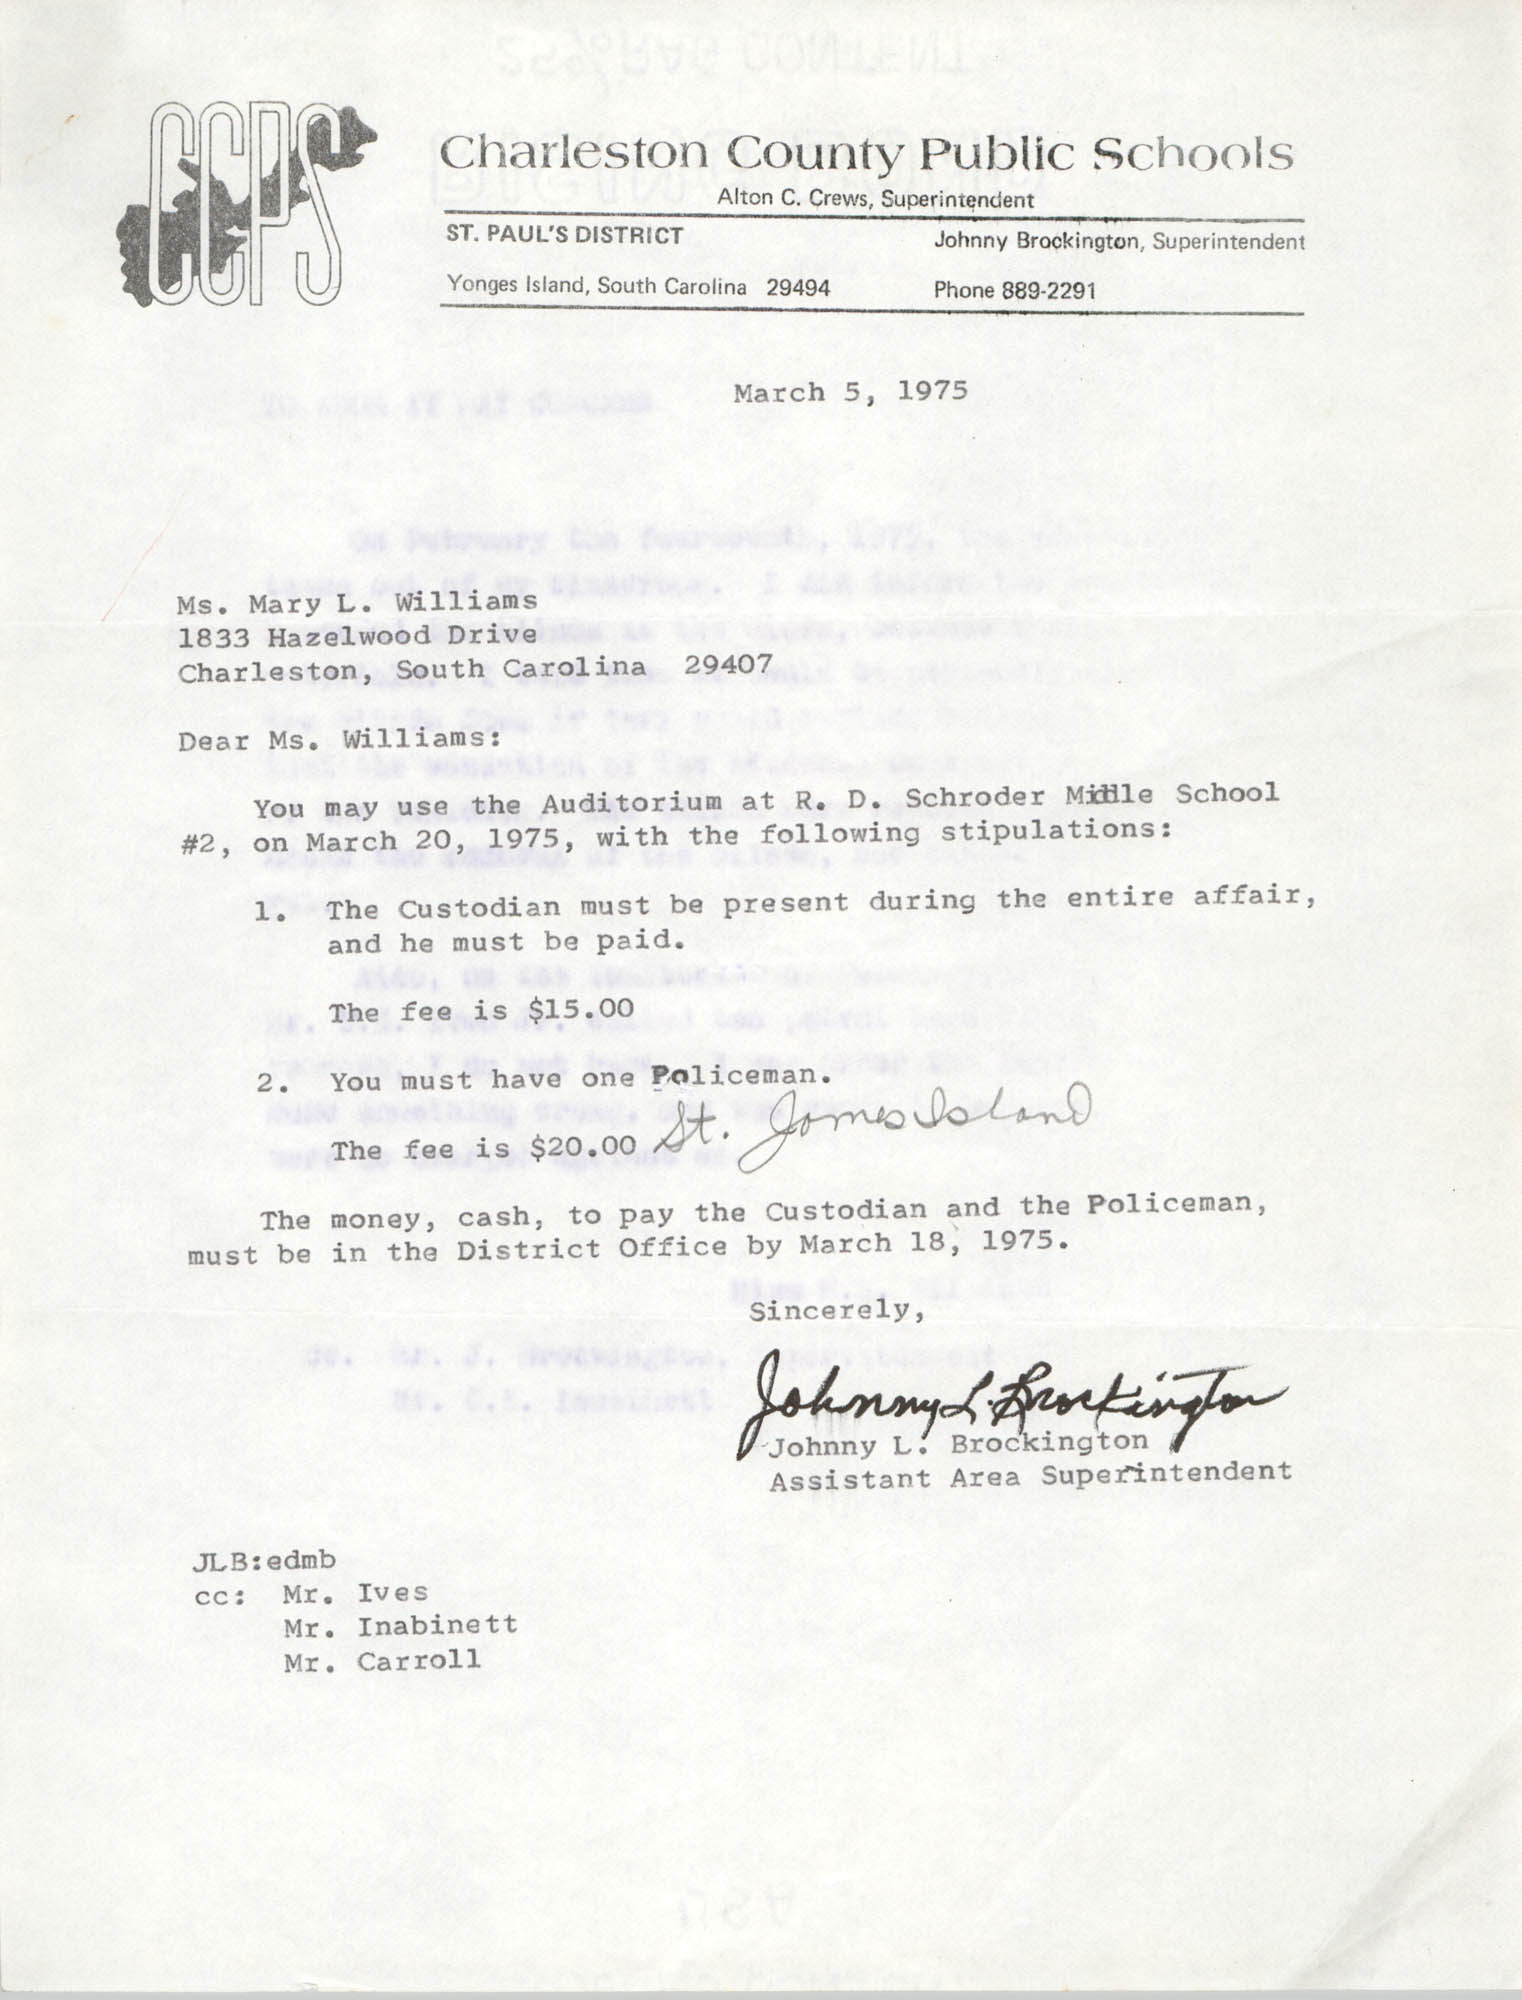 Letter from Johnny L. Brockington to Mary L. Williams, March 5, 1975